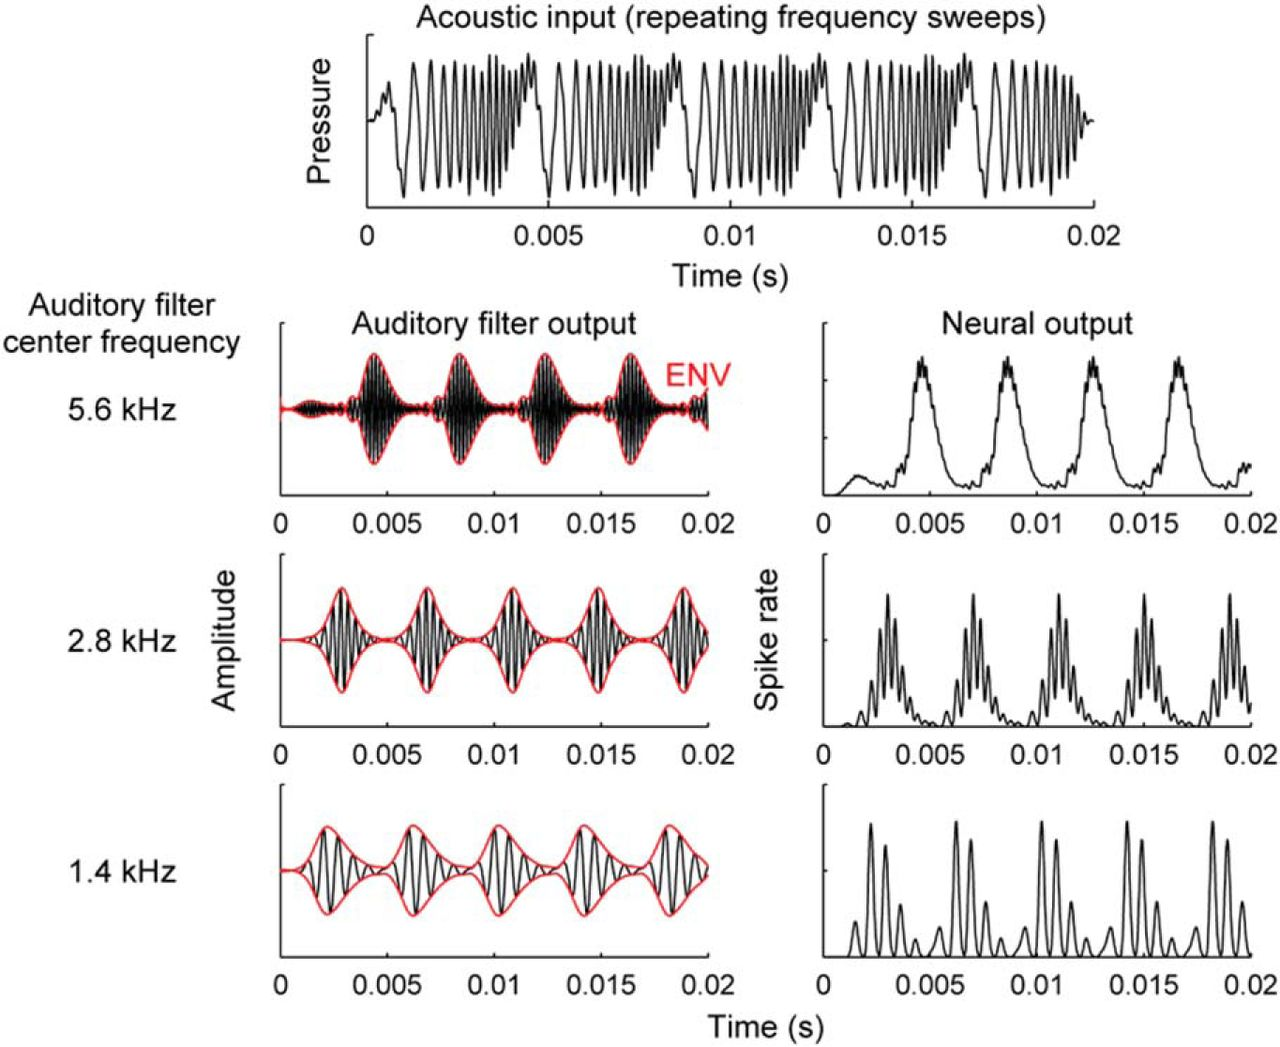 Distorted Tonotopic Coding Of Temporal Envelope And Fine Structure With Noise Induced Hearing